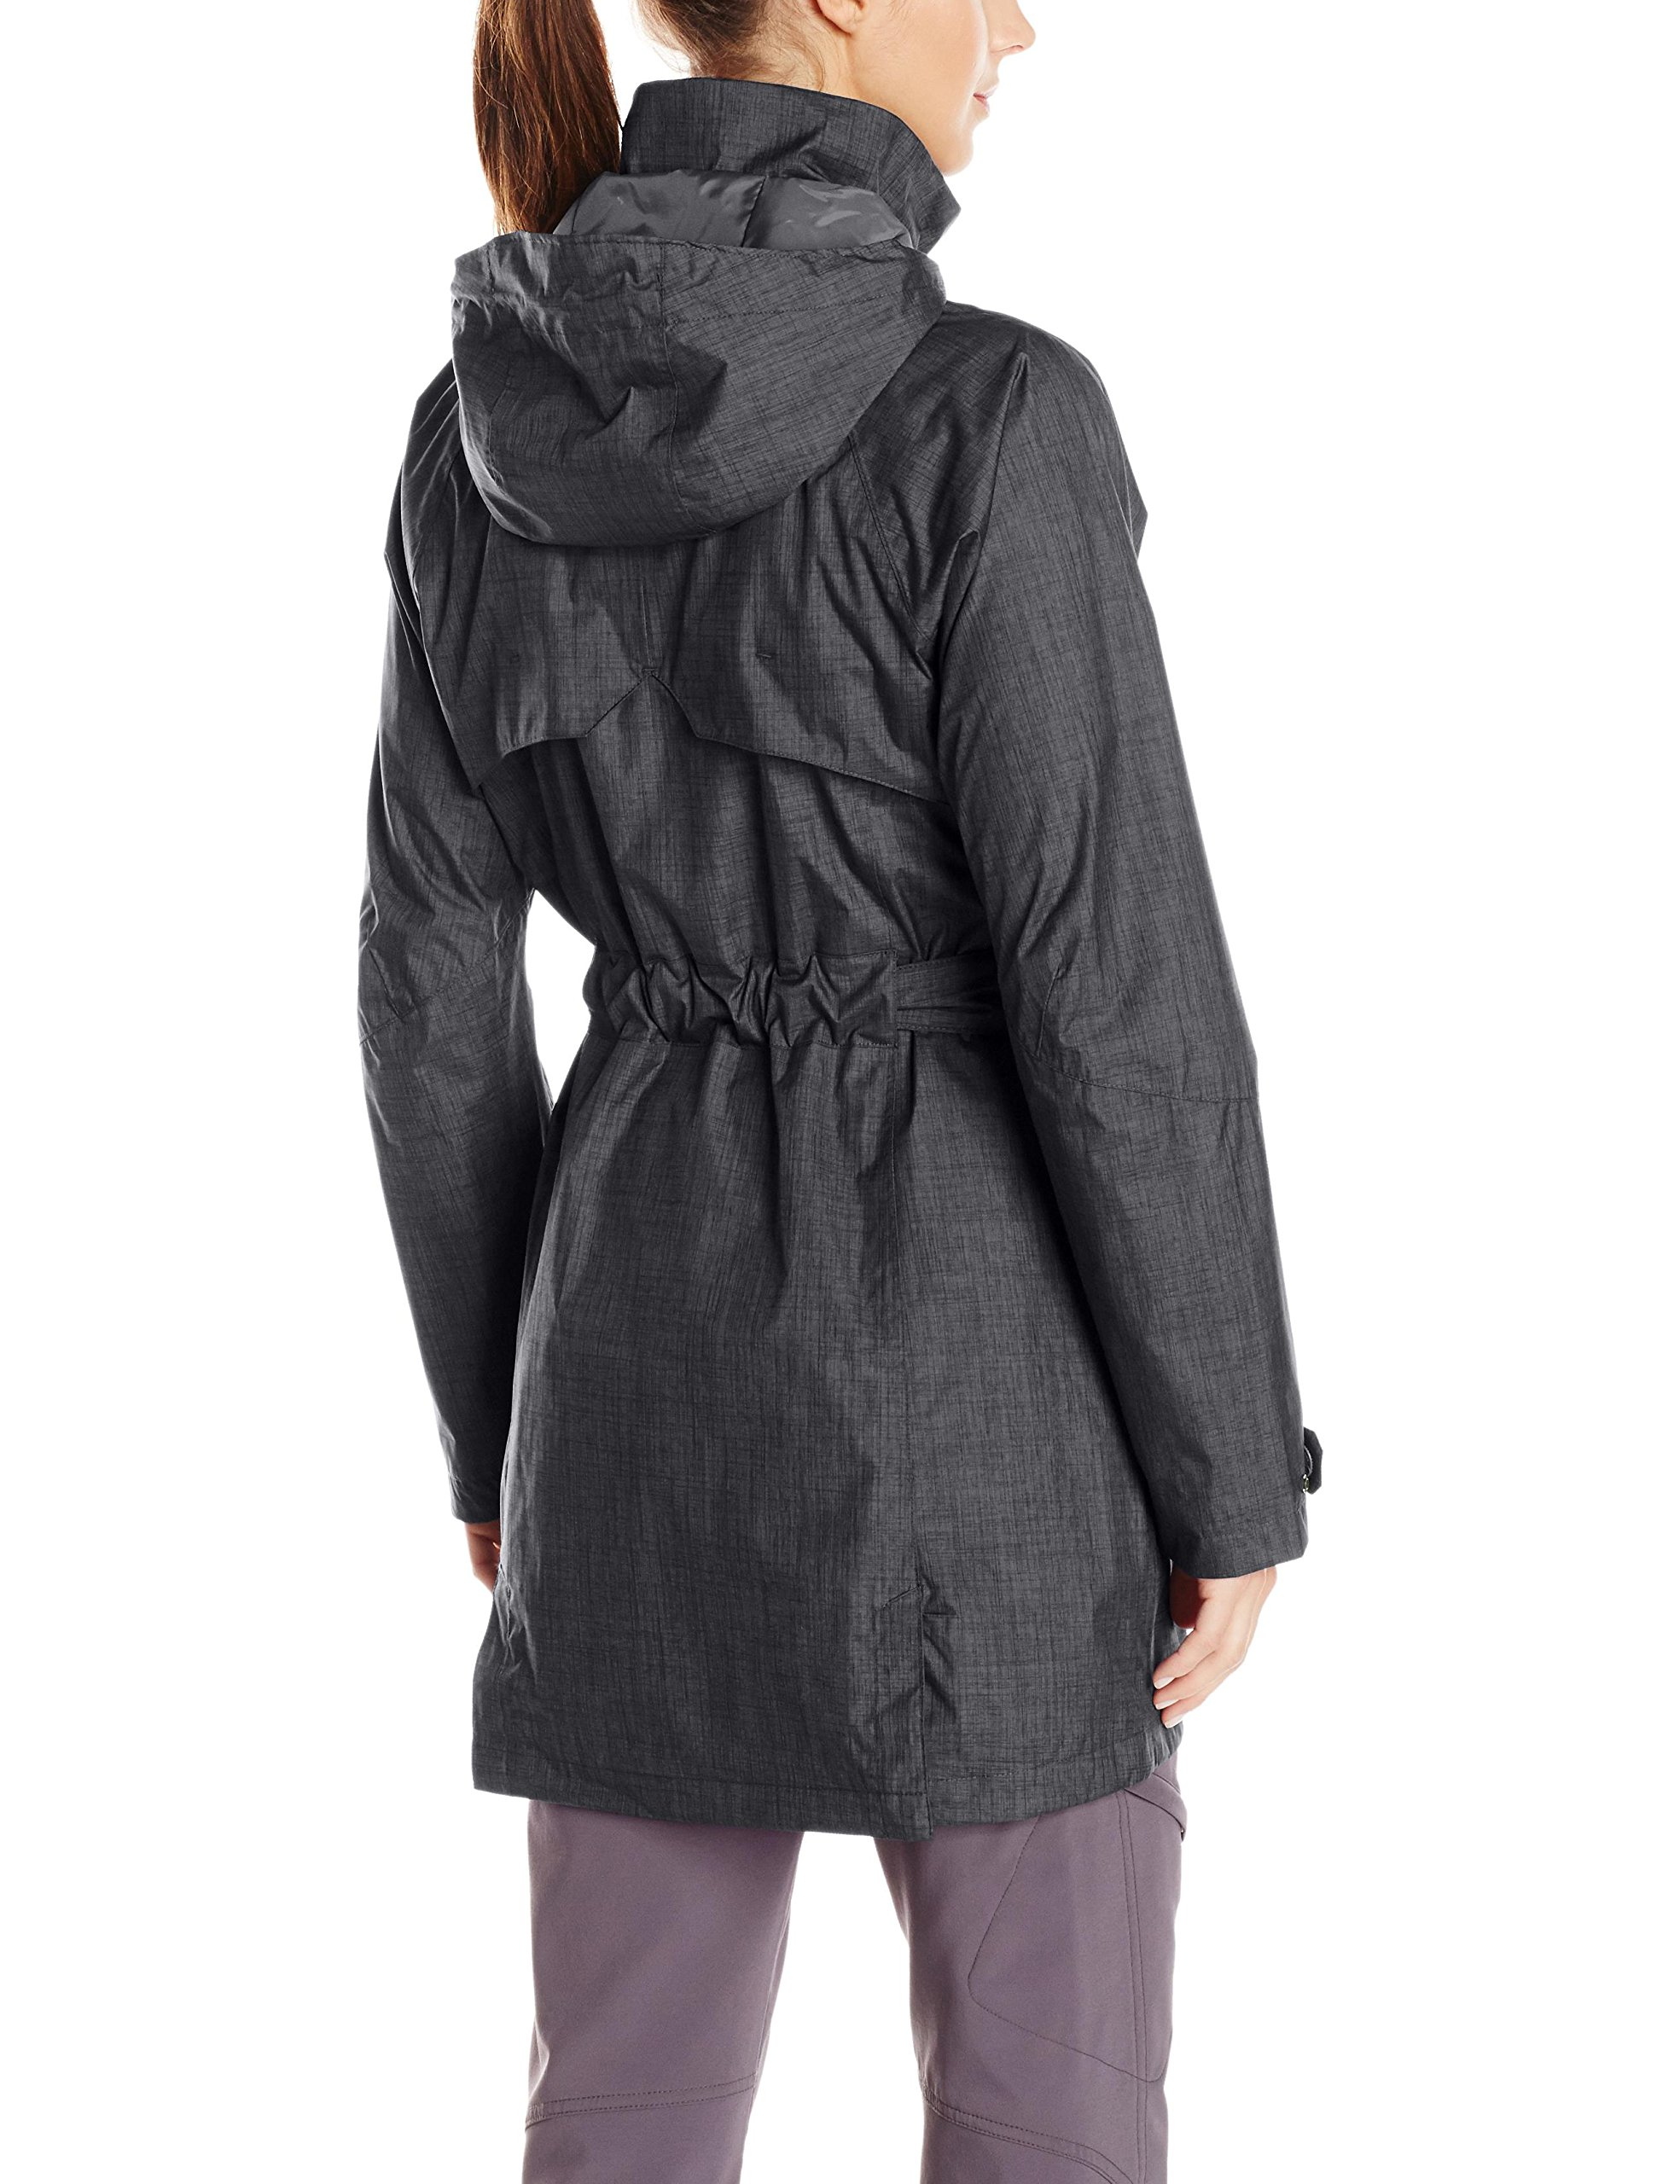 Columbia Women's Steal Your Thunder Jacket, Medium, Black by Columbia (Image #6)